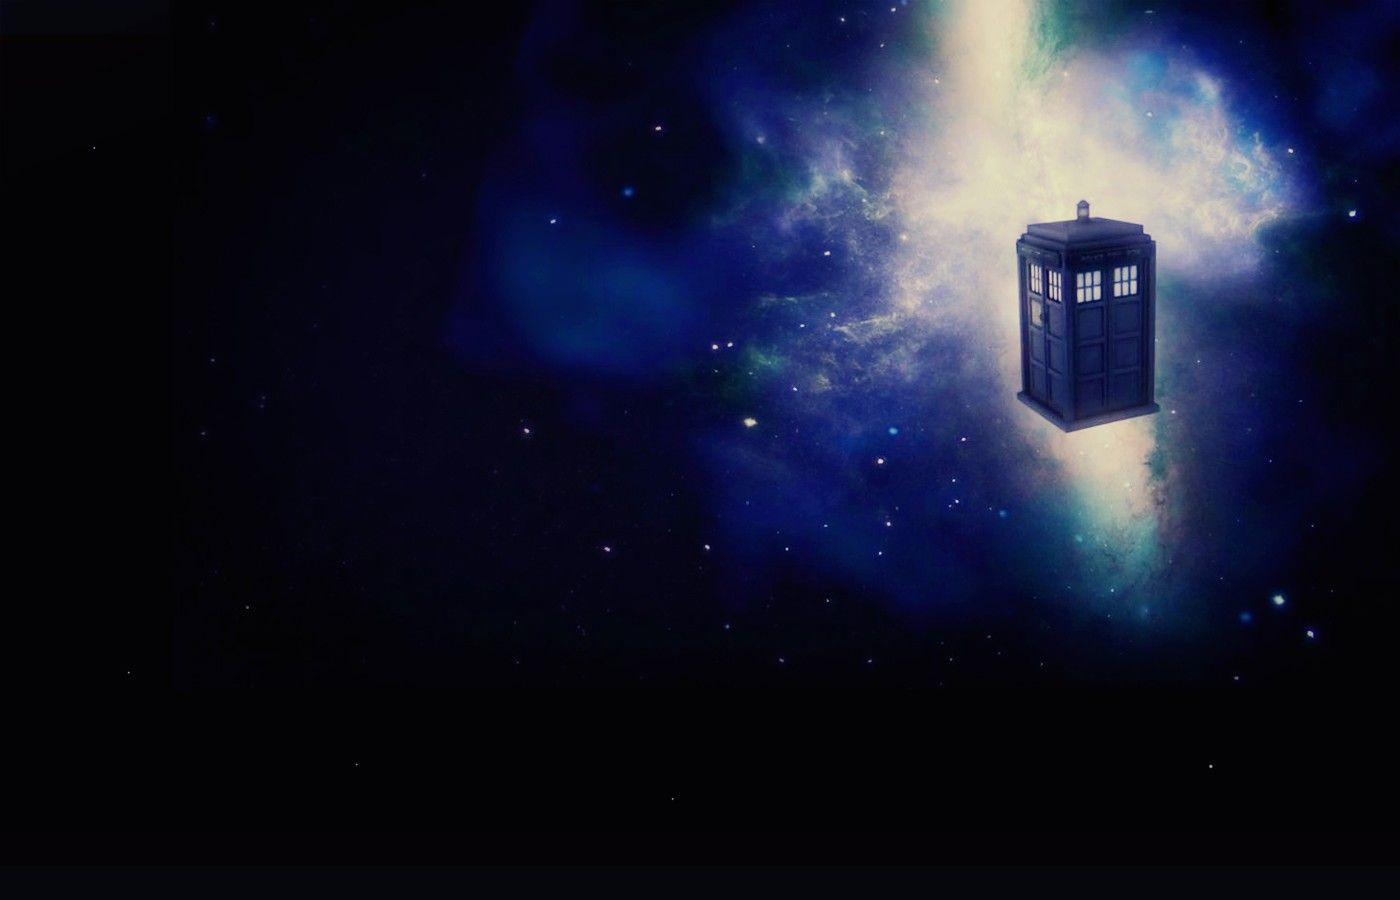 doctor who live wallpaper android